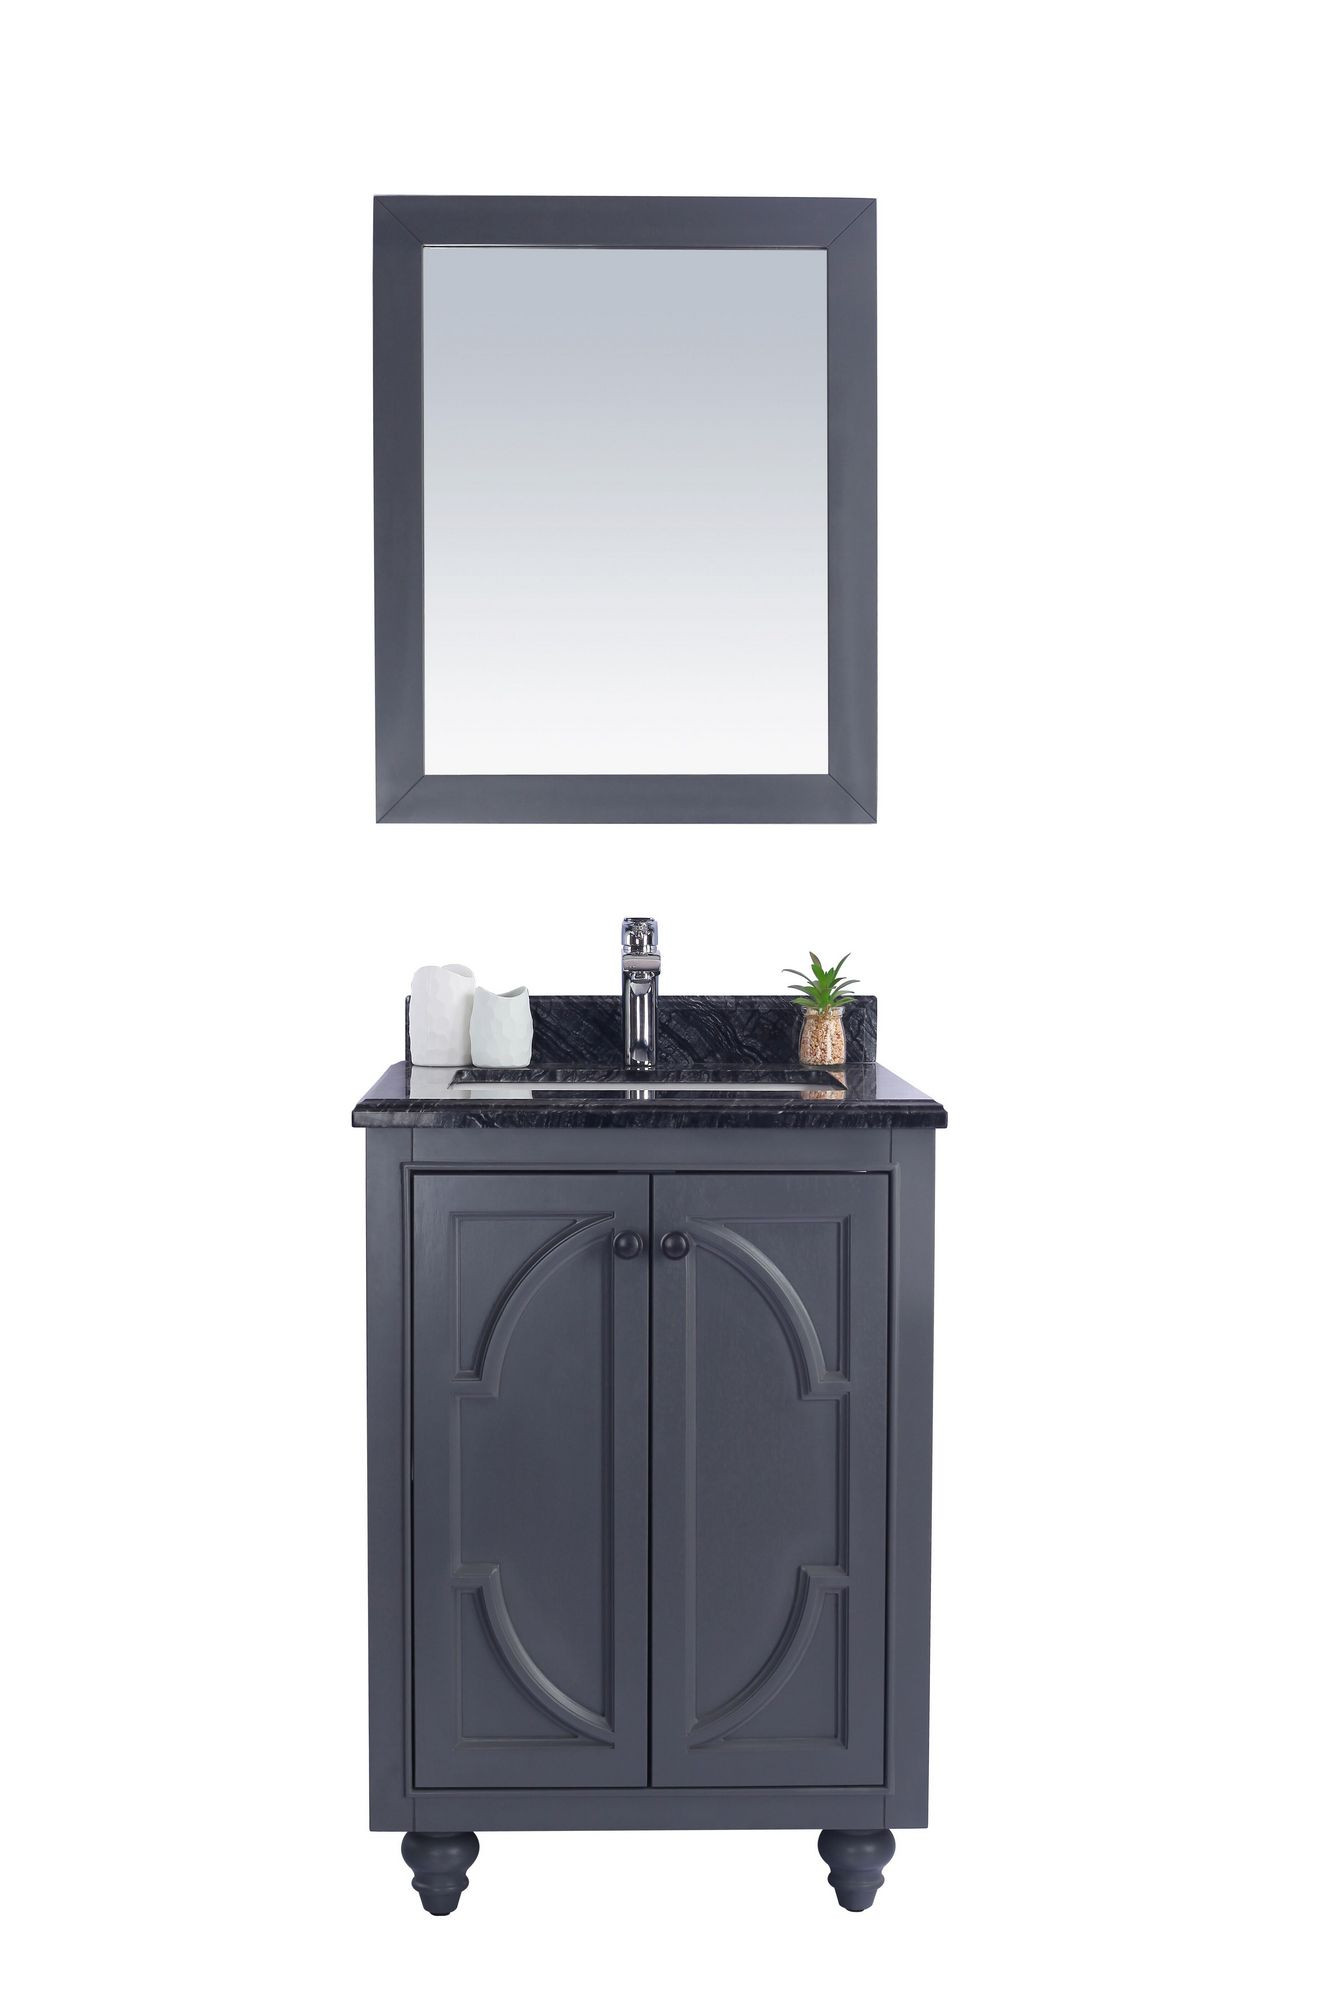 Laviva 313613-24-BW Odyssey 24 Inch Maple Vanity With Black Wood Counter